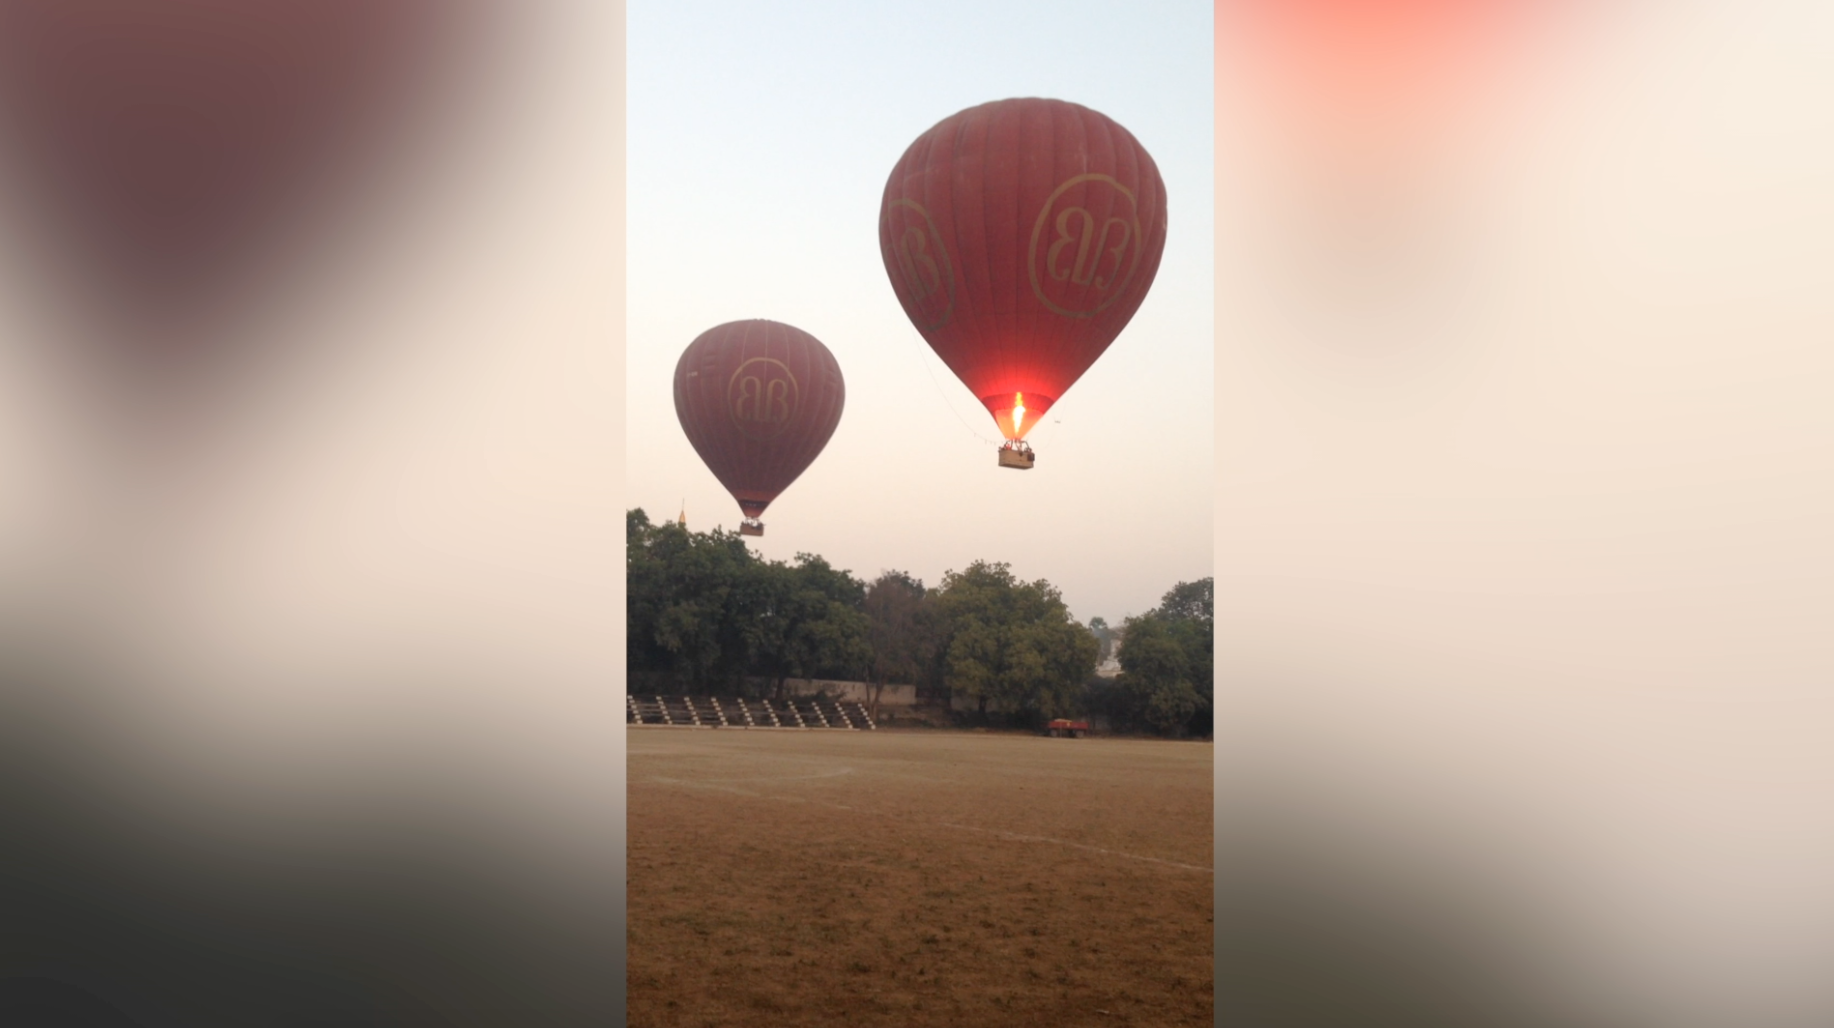 The best way to see thousands of temples in central Burma: Hot-air balloon